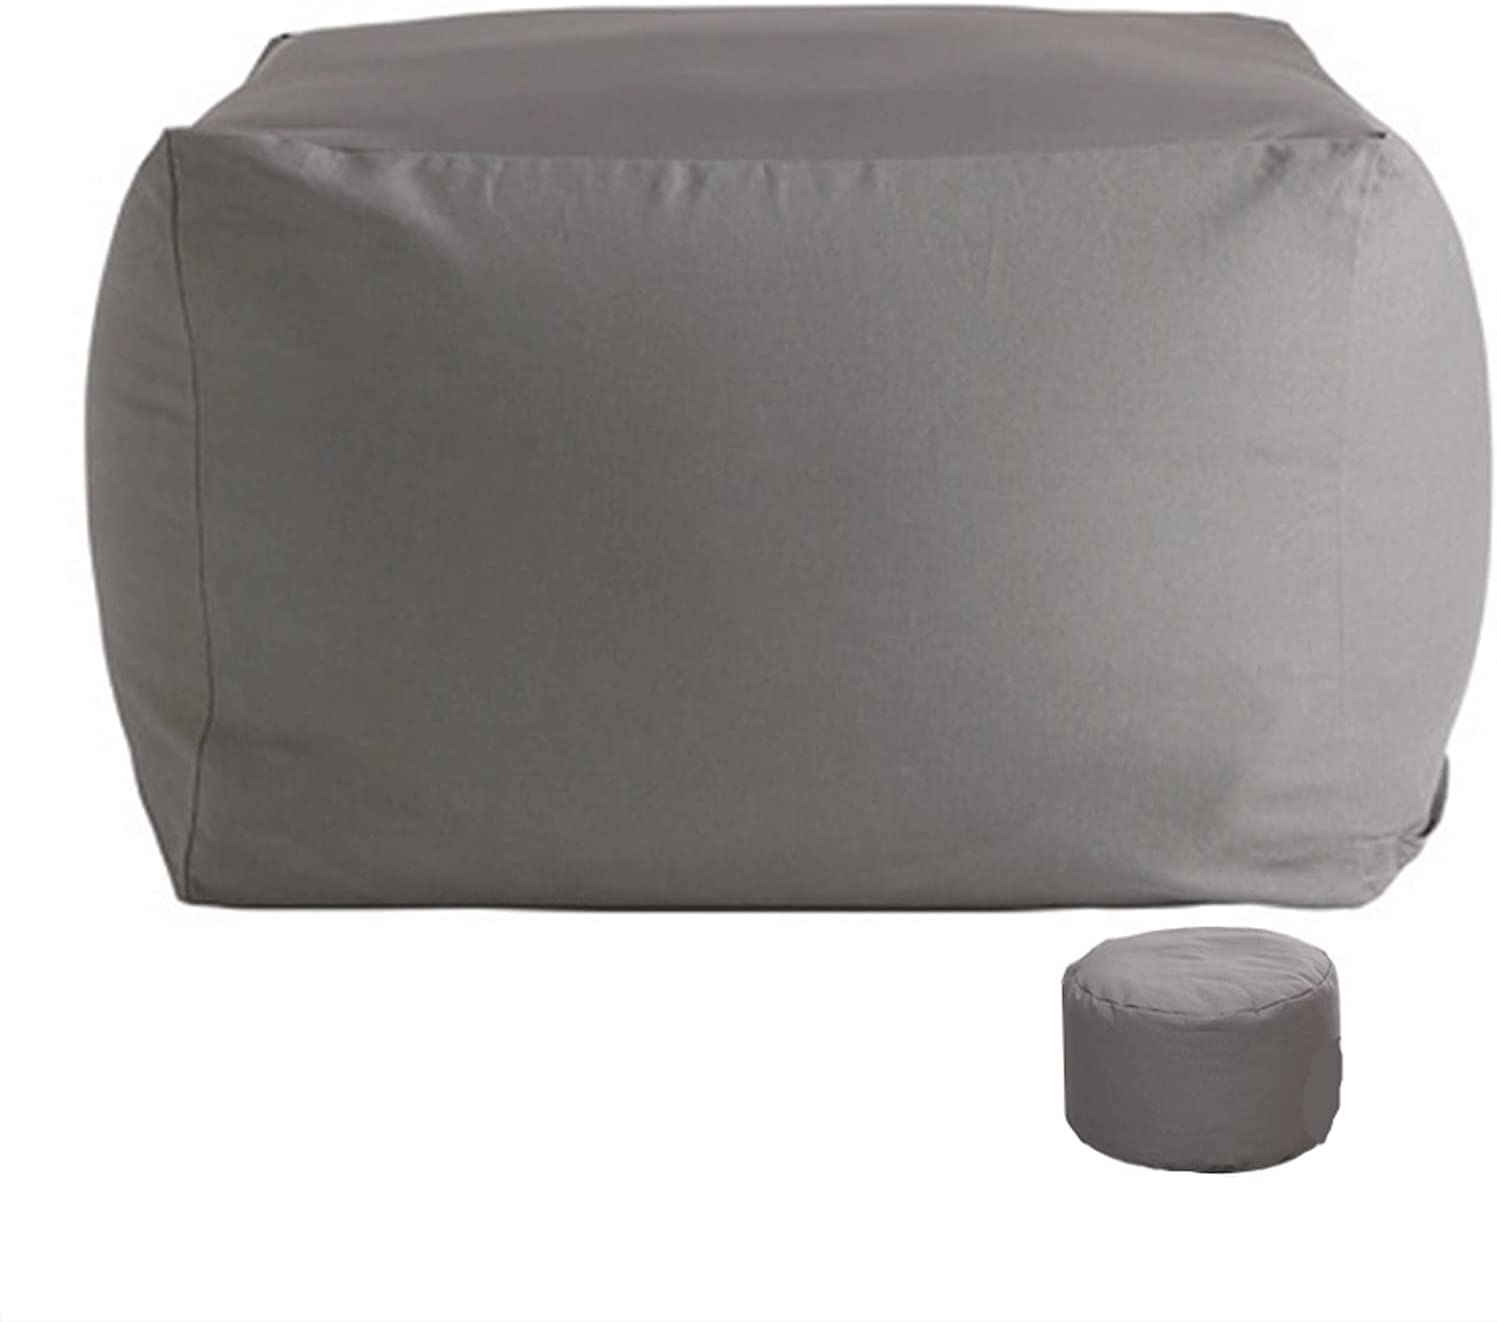 JNOI Bean Bag Chair Special sale item w Foot Giant Stool Ch Foam-Filled All items free shipping Furniture